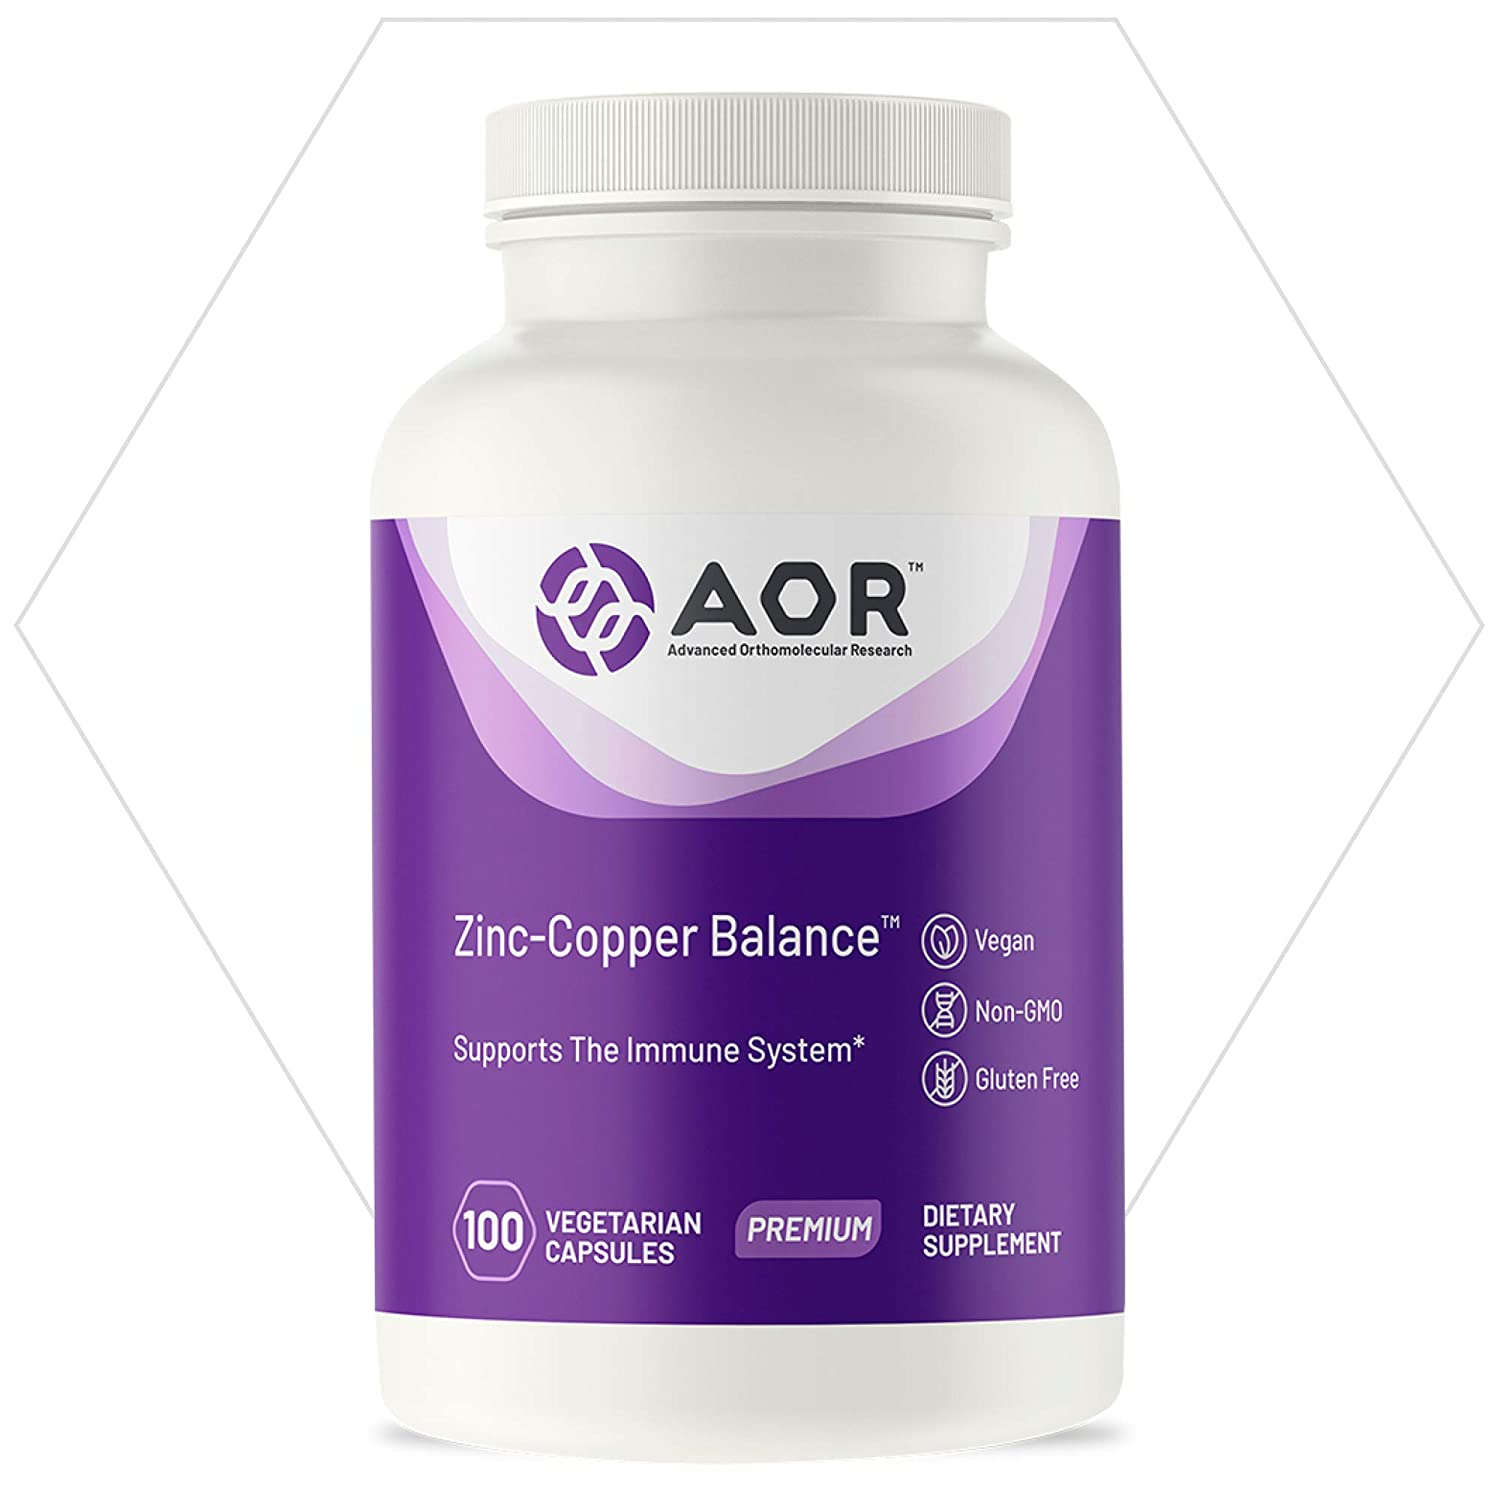 AOR, Zinc-Copper Balance, Mineral Support for Prostate, Immune and Skin Health, Dietary Supplement, 100 Servings (100 Capsules)